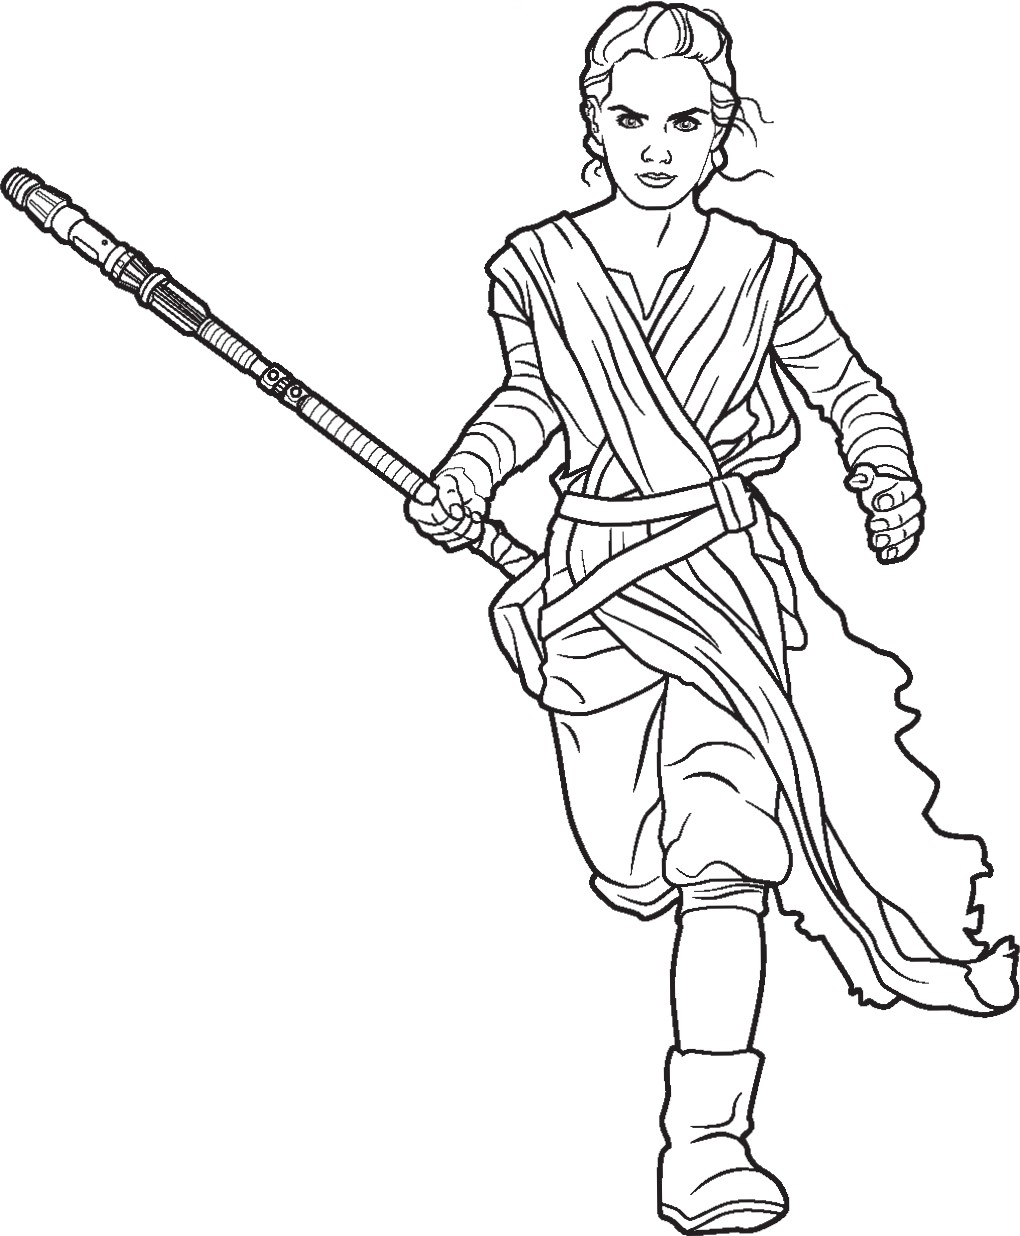 rey and finn coloring pages - photo#6